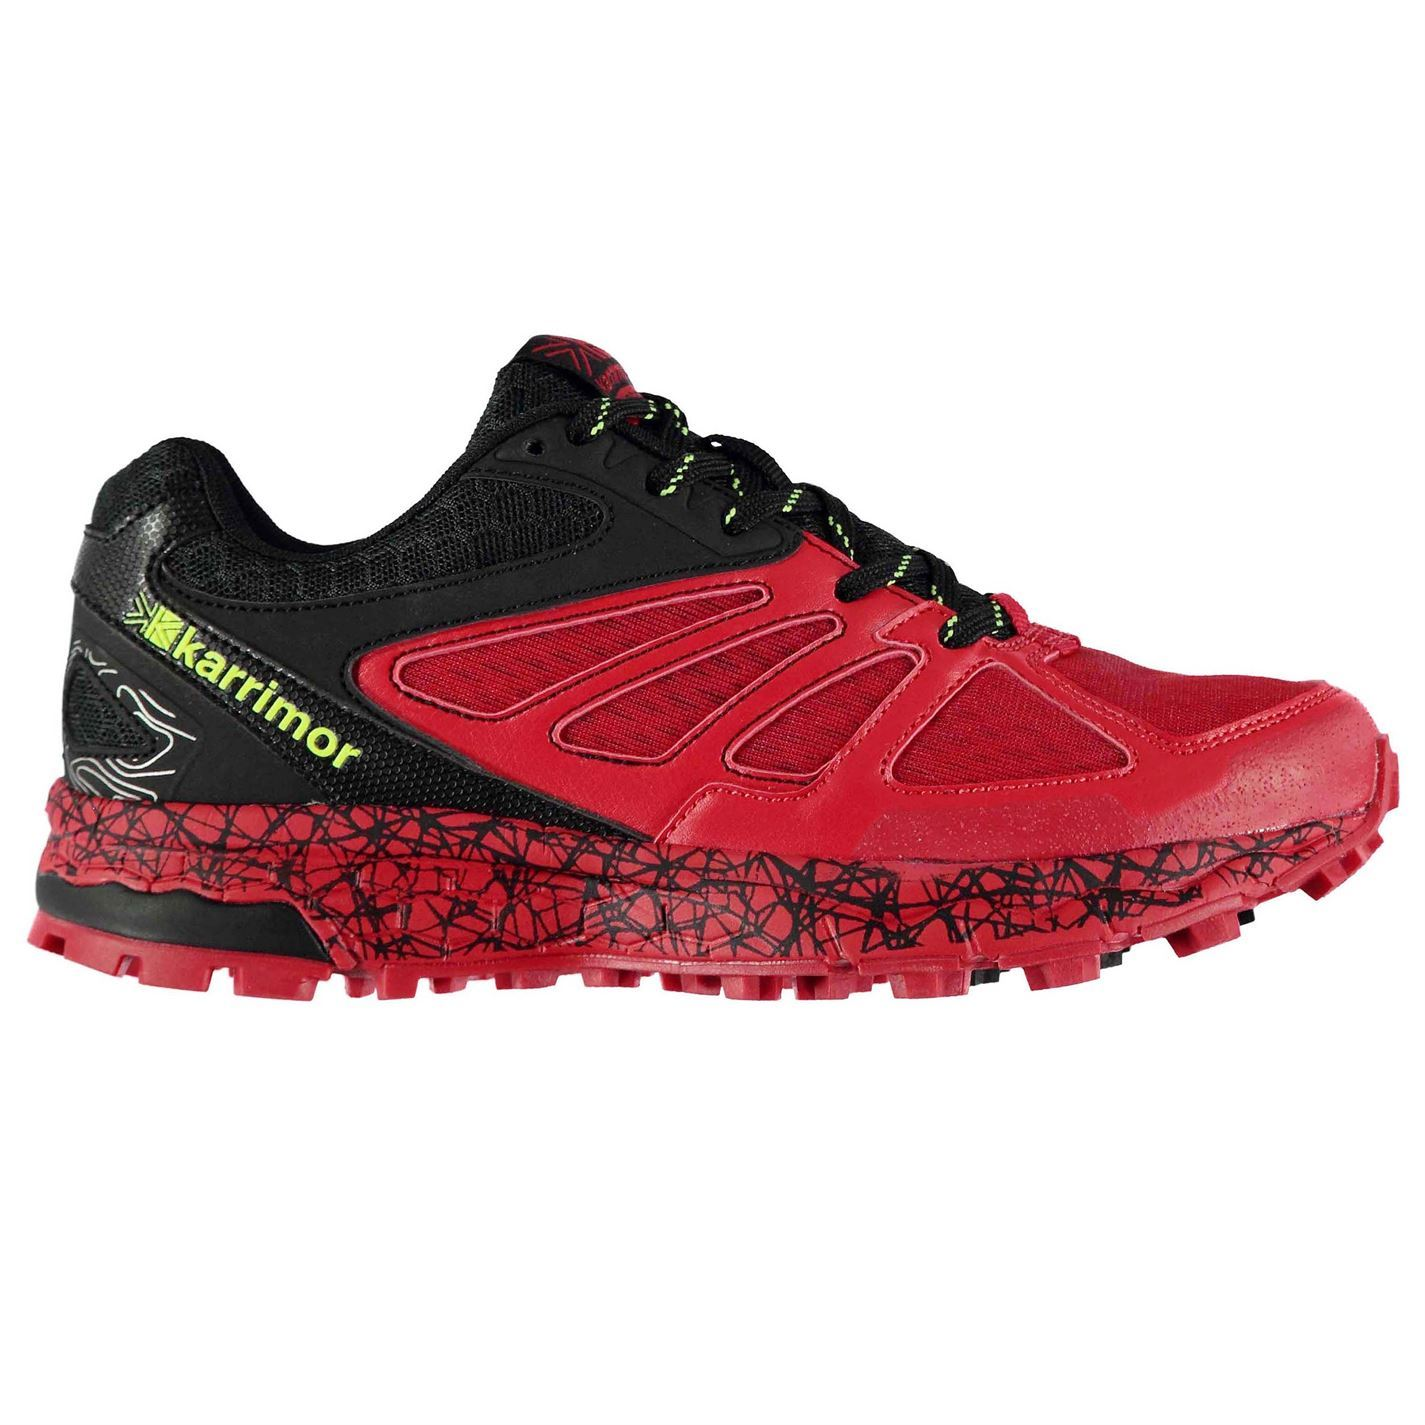 Karrimor-Kids-Boys-Tempo-5-Trail-Running-Shoes-Runners-Lace-Up-Breathable-Mesh